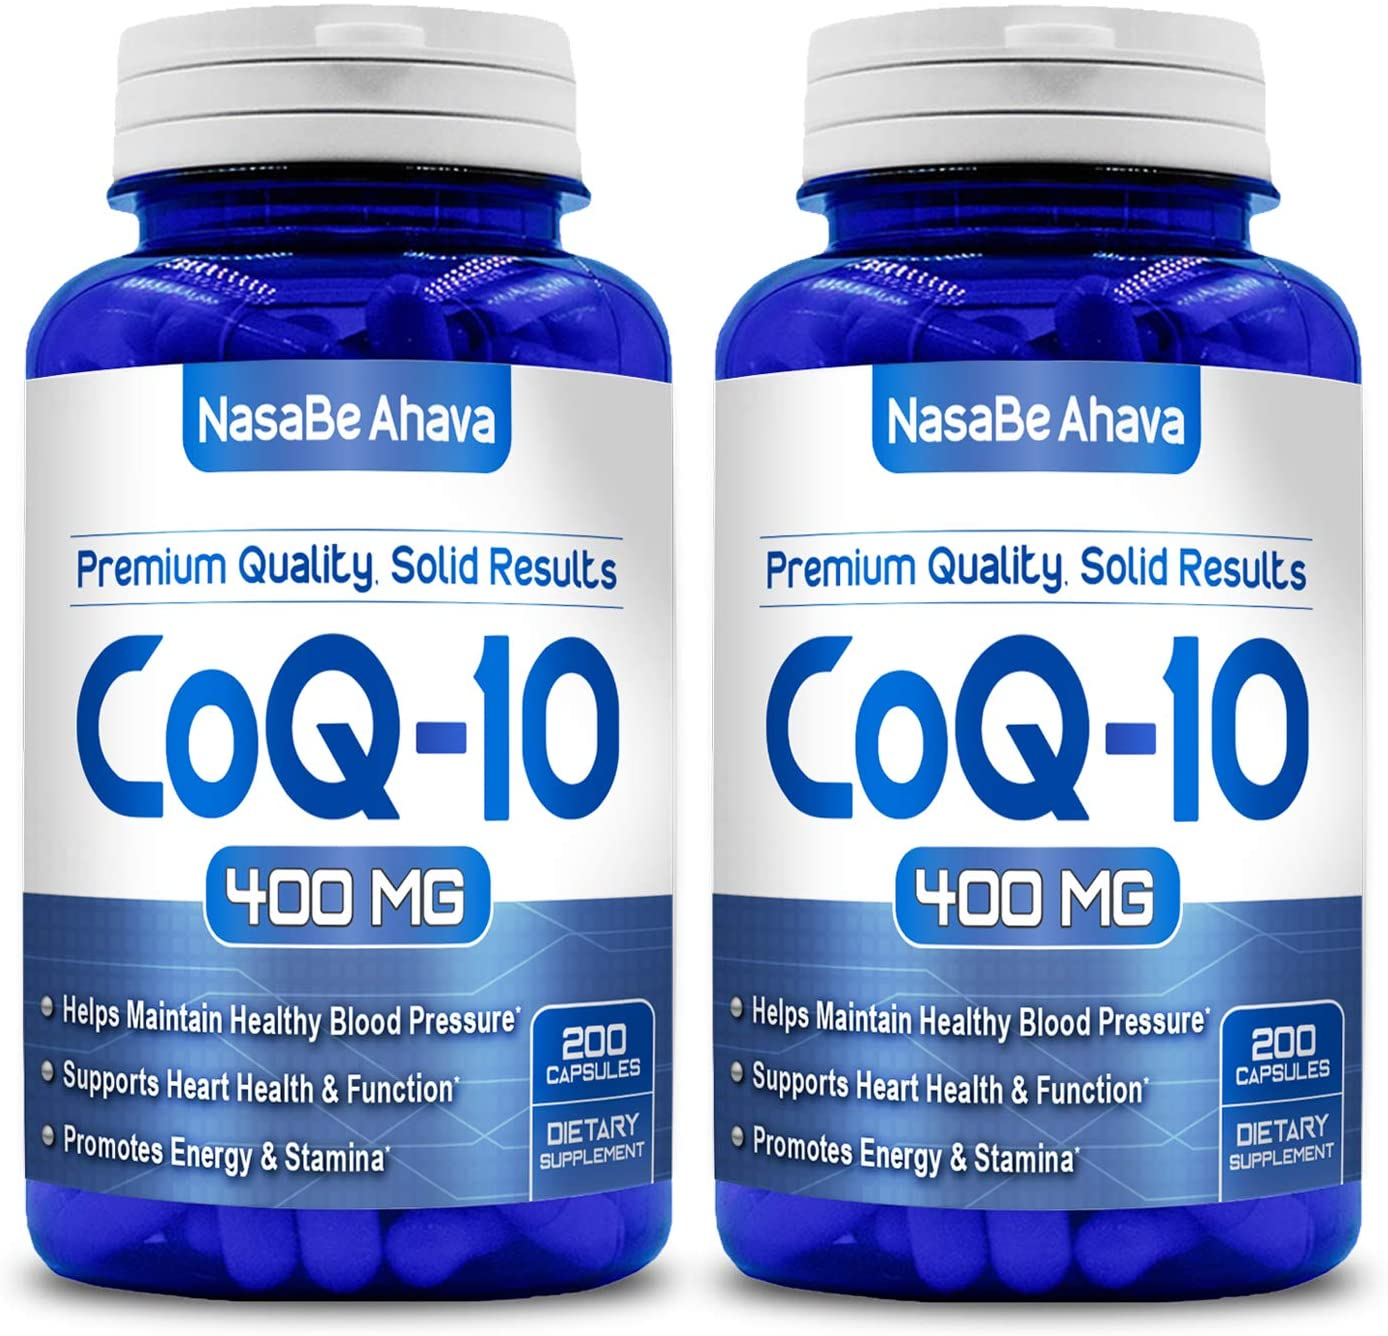 NASA Beahava Pure CoQ10 400mg Per Serving - 400 Capsules Supports Heart Health & Helps Maintain Healthy Blood Pressure, 2 Pack (400 Capsules) -USA Made